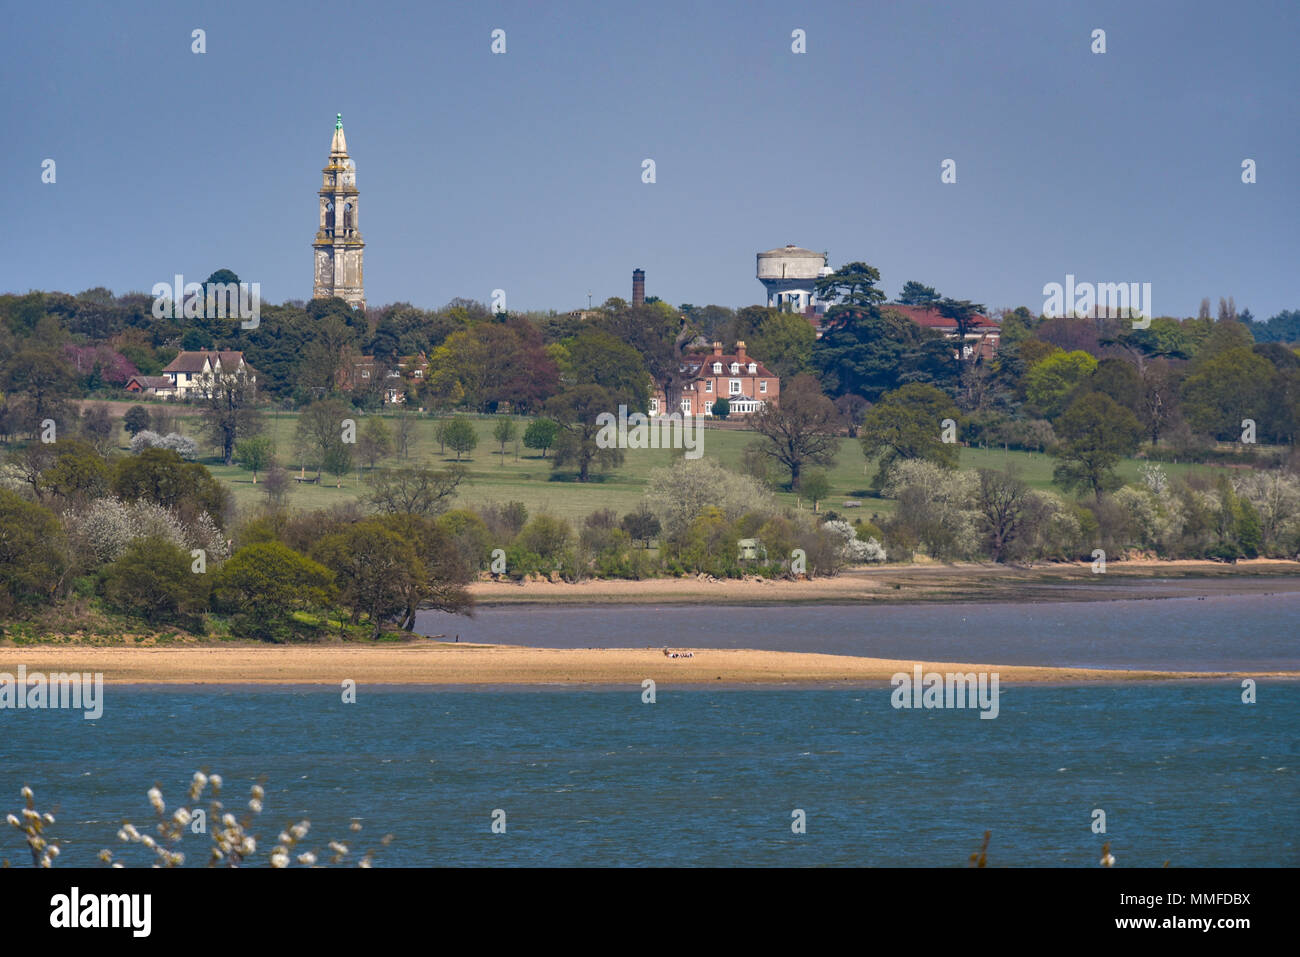 Royal Hospital School Holbrook tower, Suffolk, UK. River Stour, river, beaches. Countryside on sunny day. Shotley peninsula. Blue sky. Space for copy - Stock Image